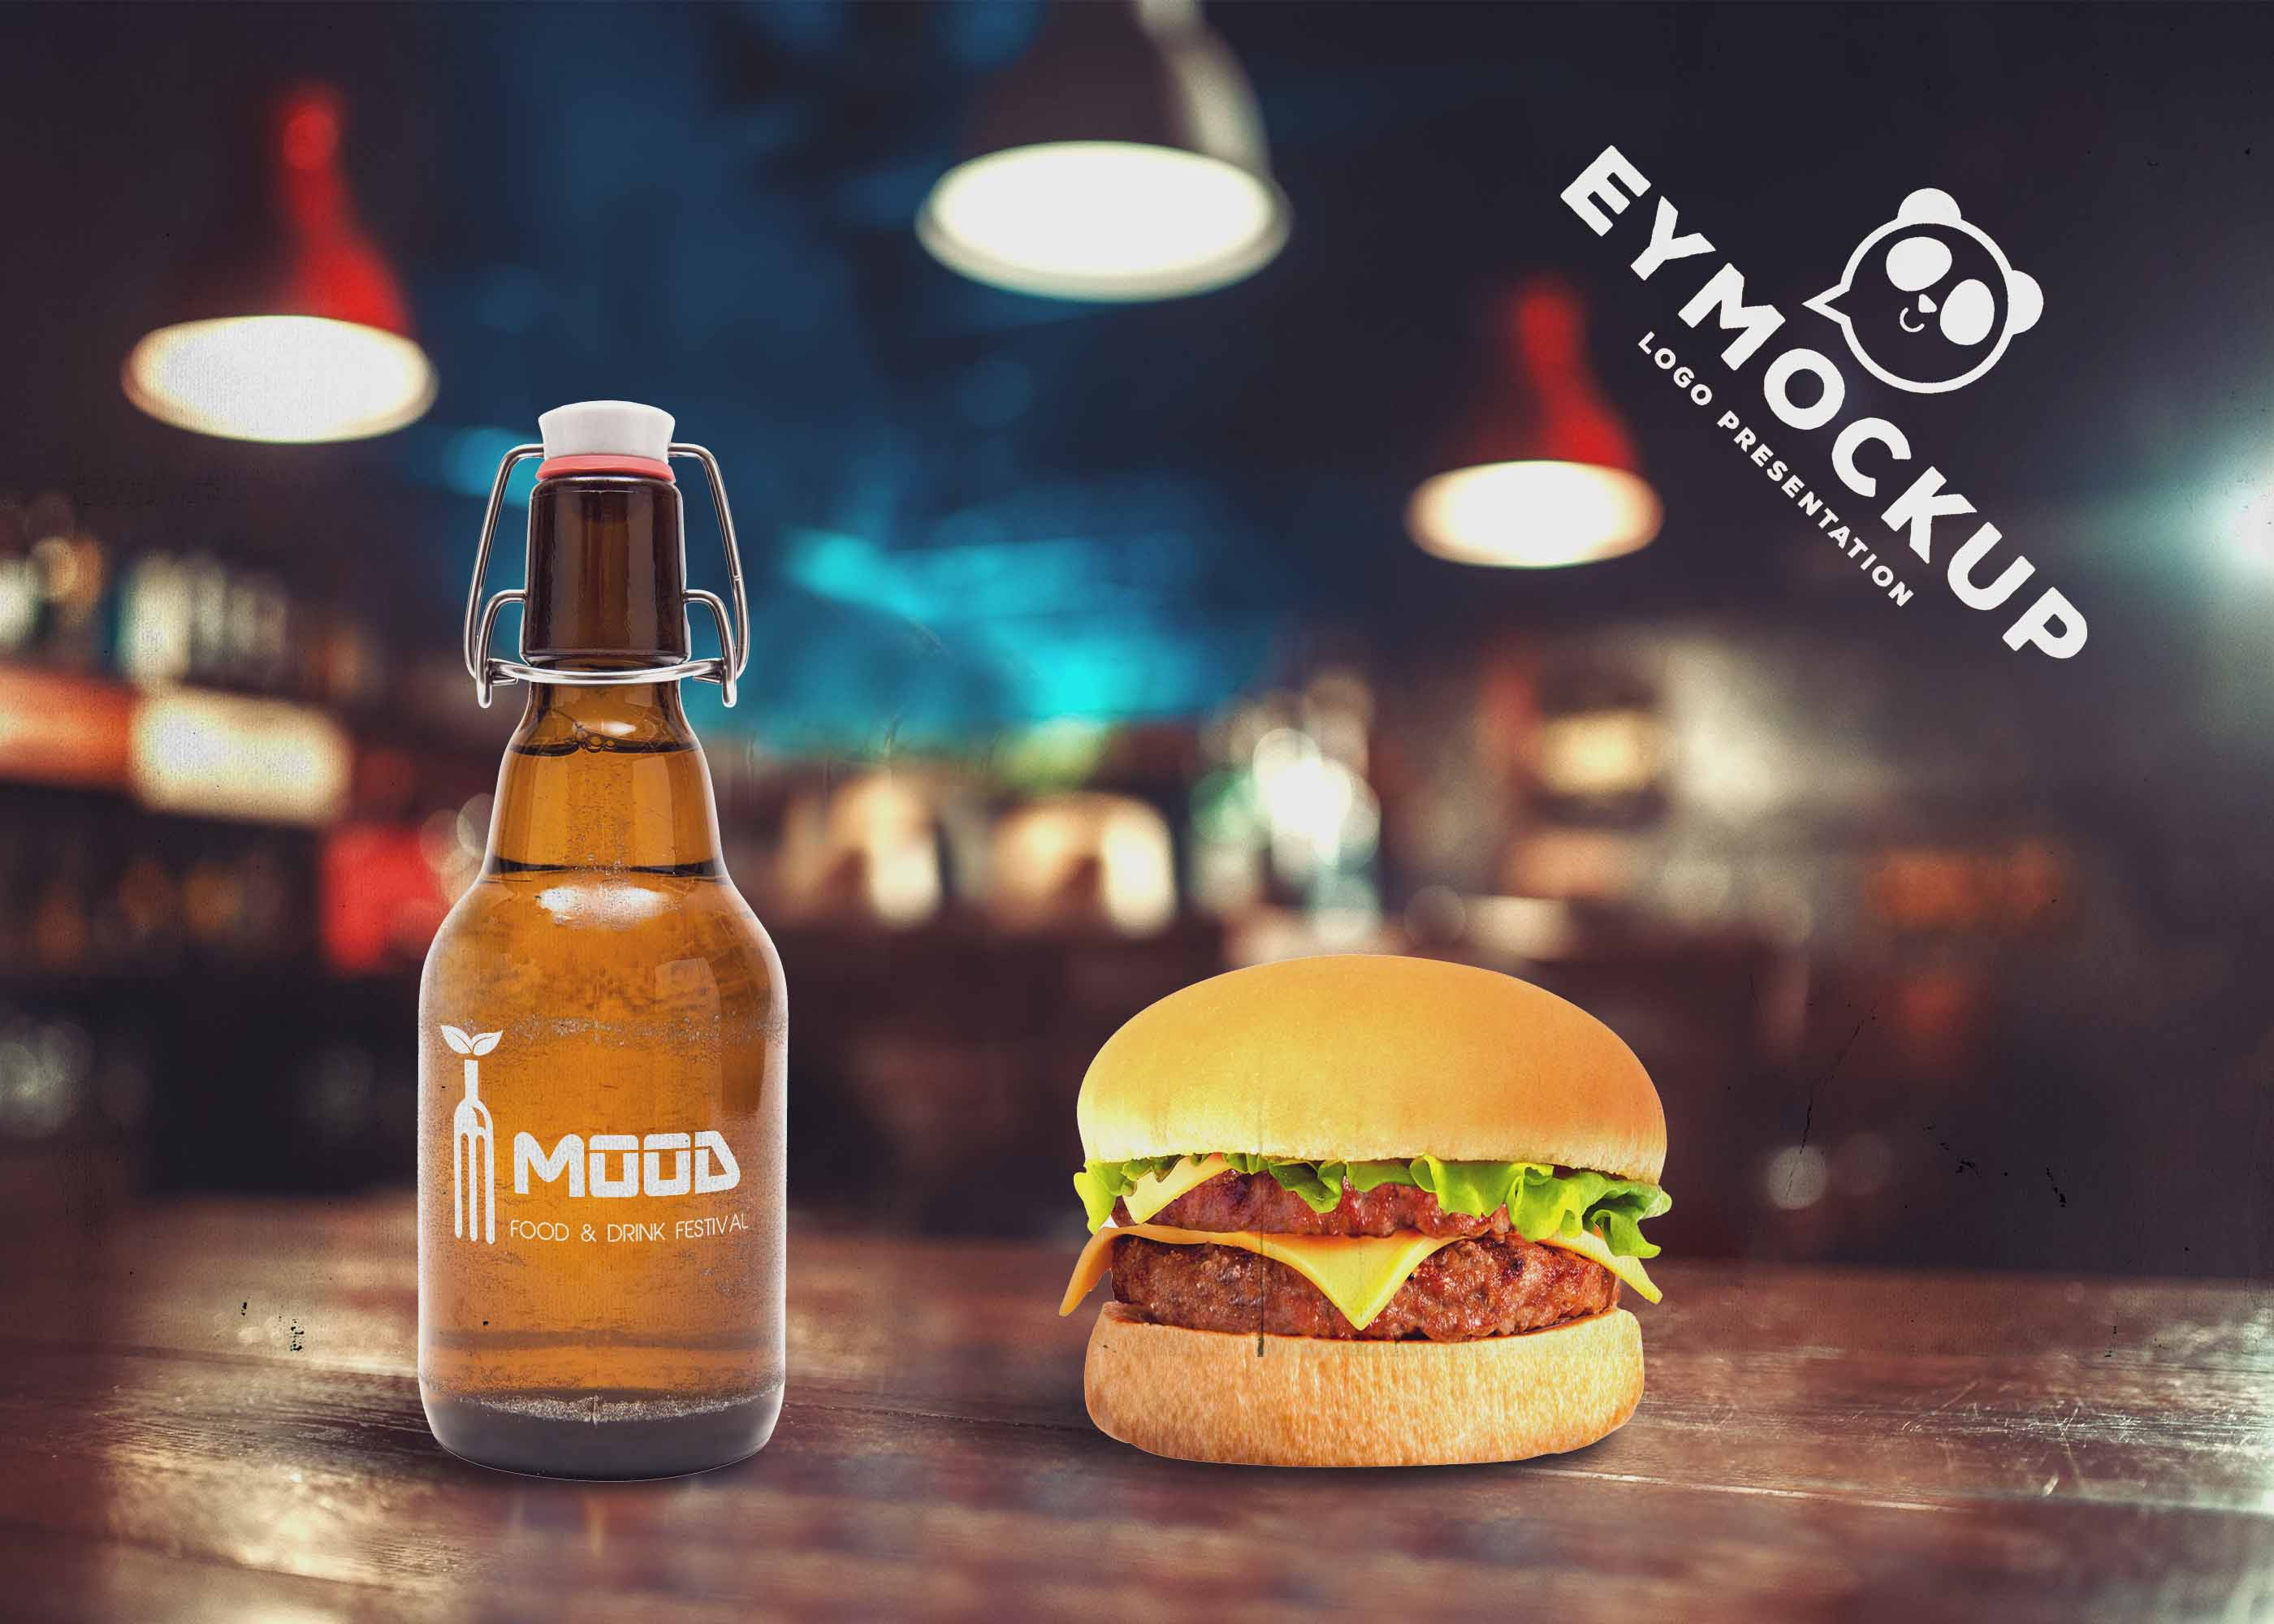 Free Beer Bottle Burger Cafe Scene Mockup